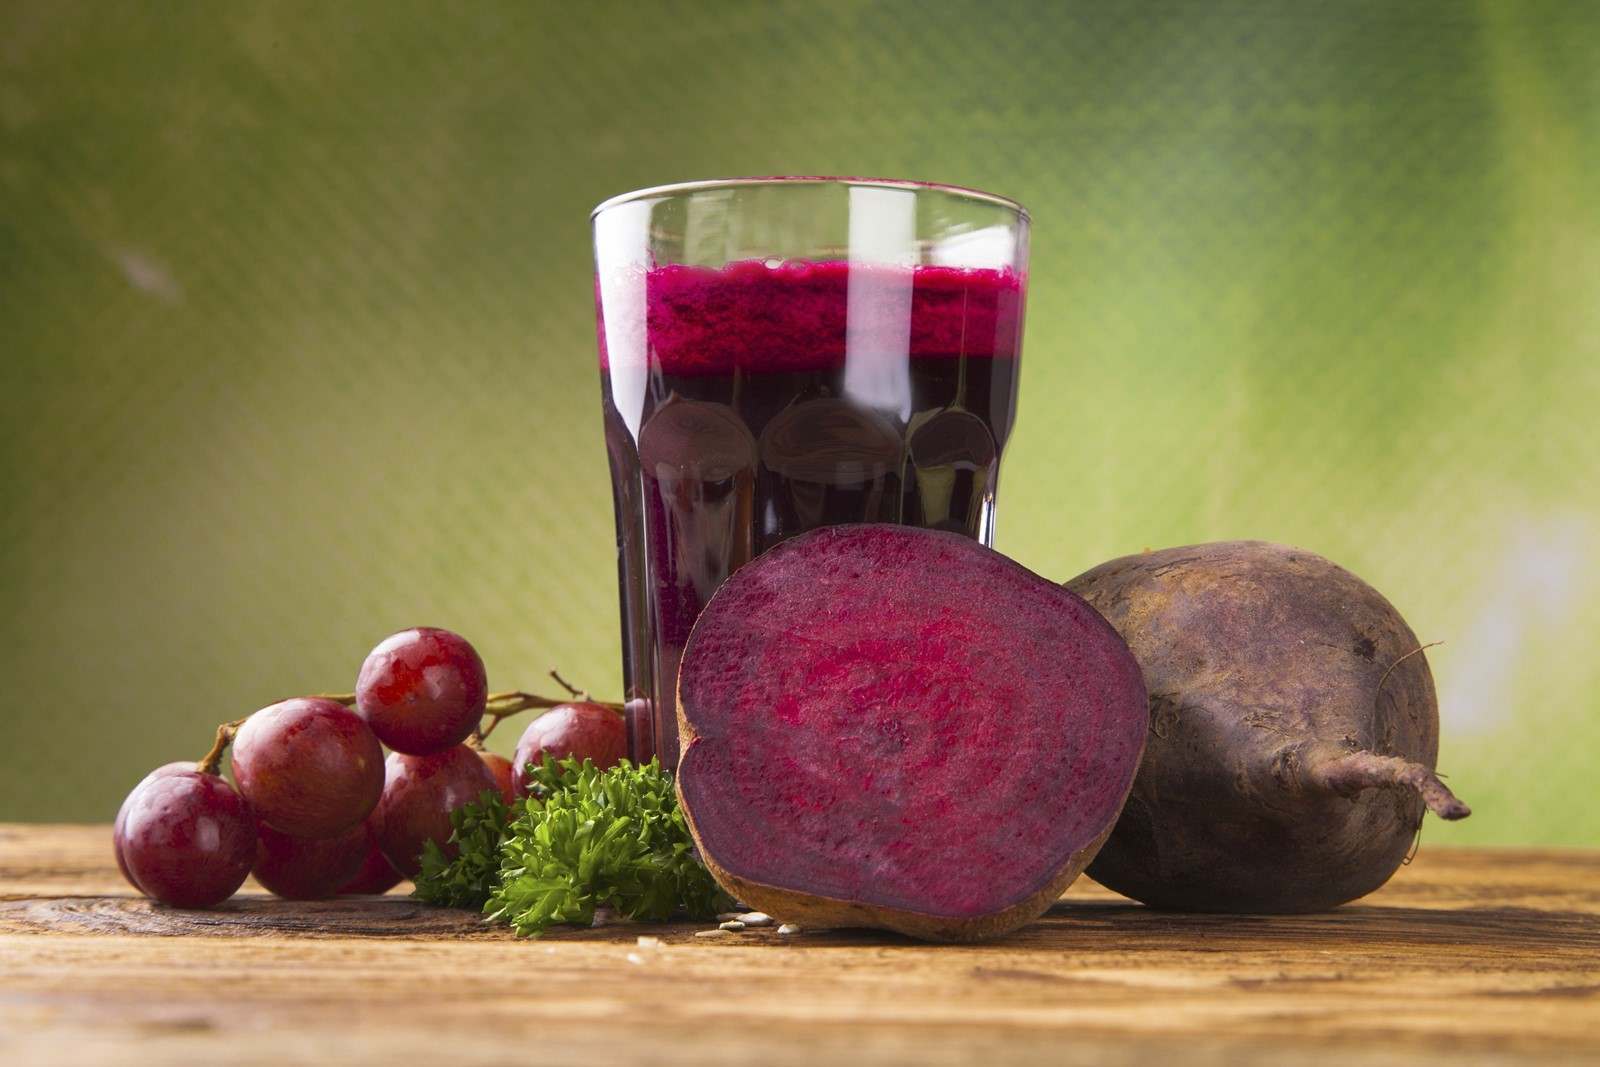 Beet juice + meds can drop blood pressure too much - Near